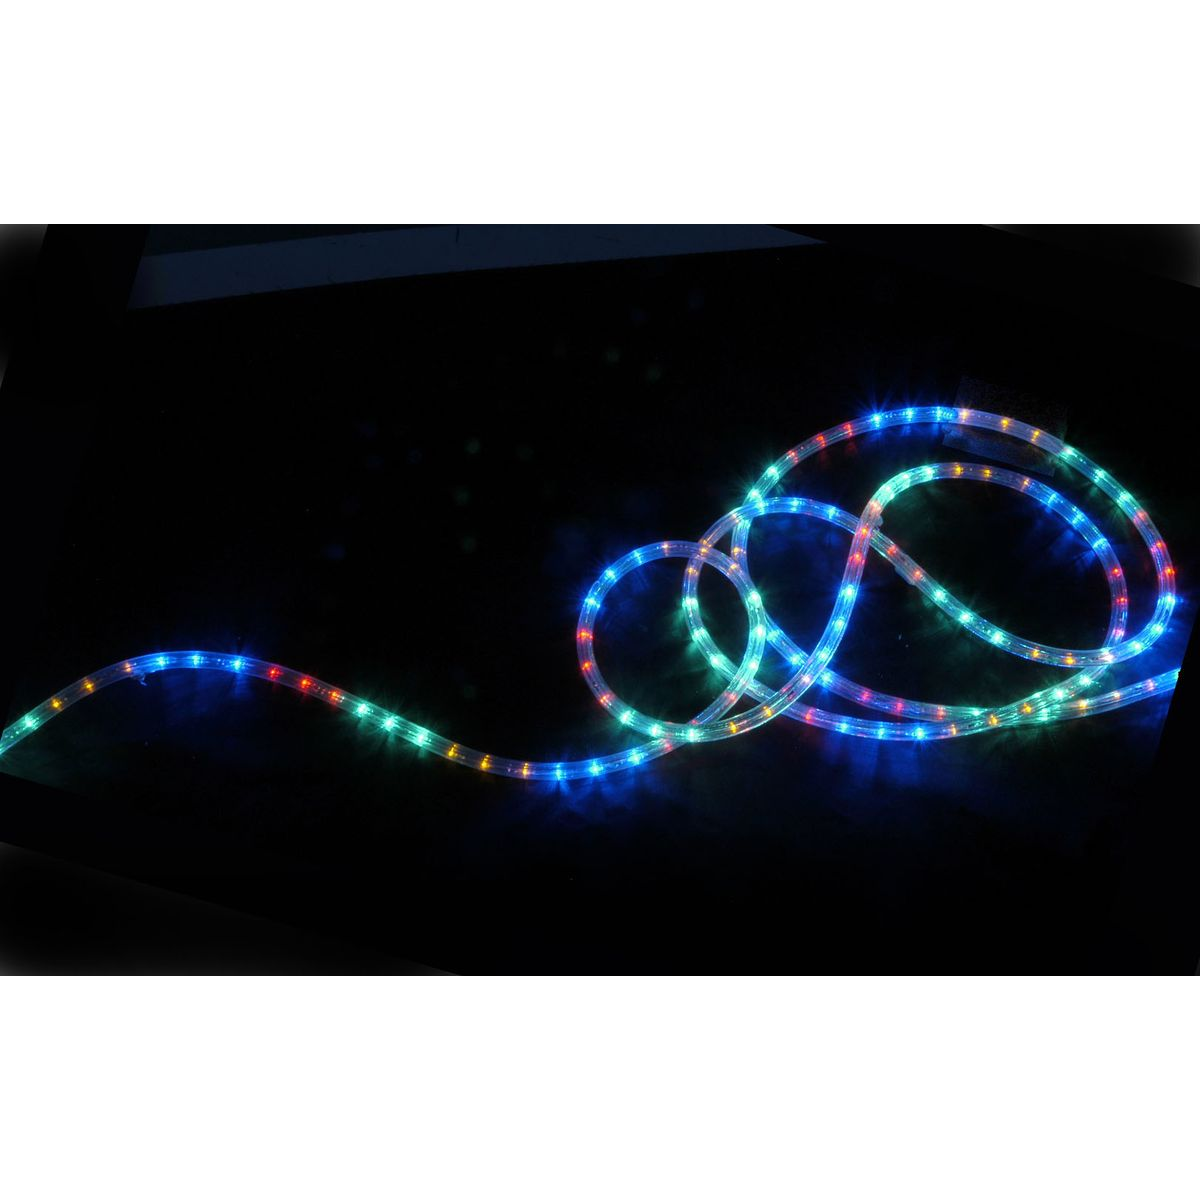 QTX IP44 Rated 10m LED Rope Light Set With Controller - Multicol Astounded